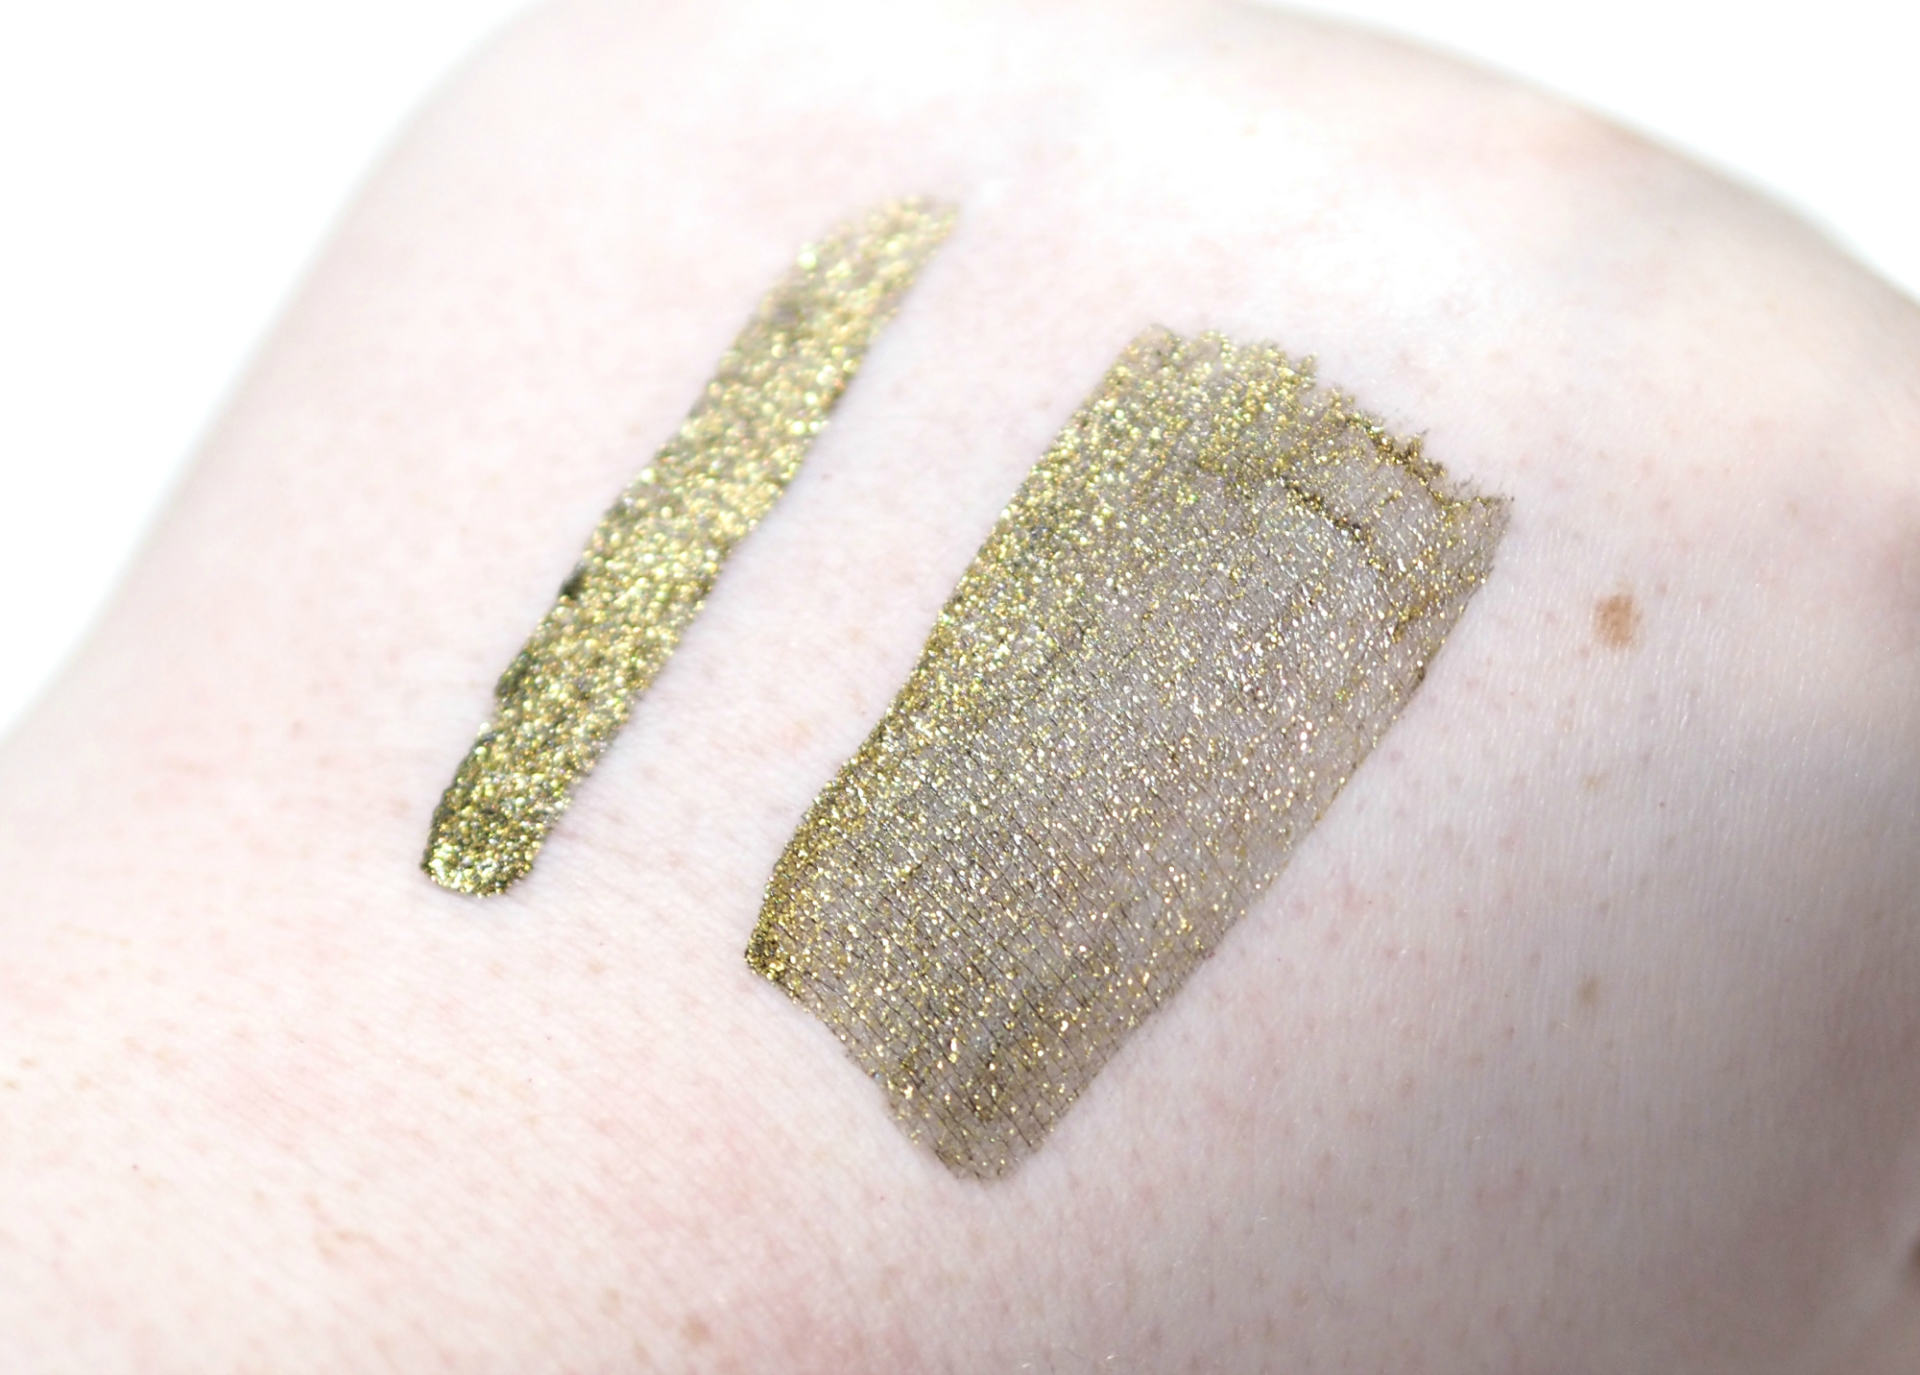 QIBEST Shimmer Liquid Eyeshadow Review and Swatches in shade 13 Matcha